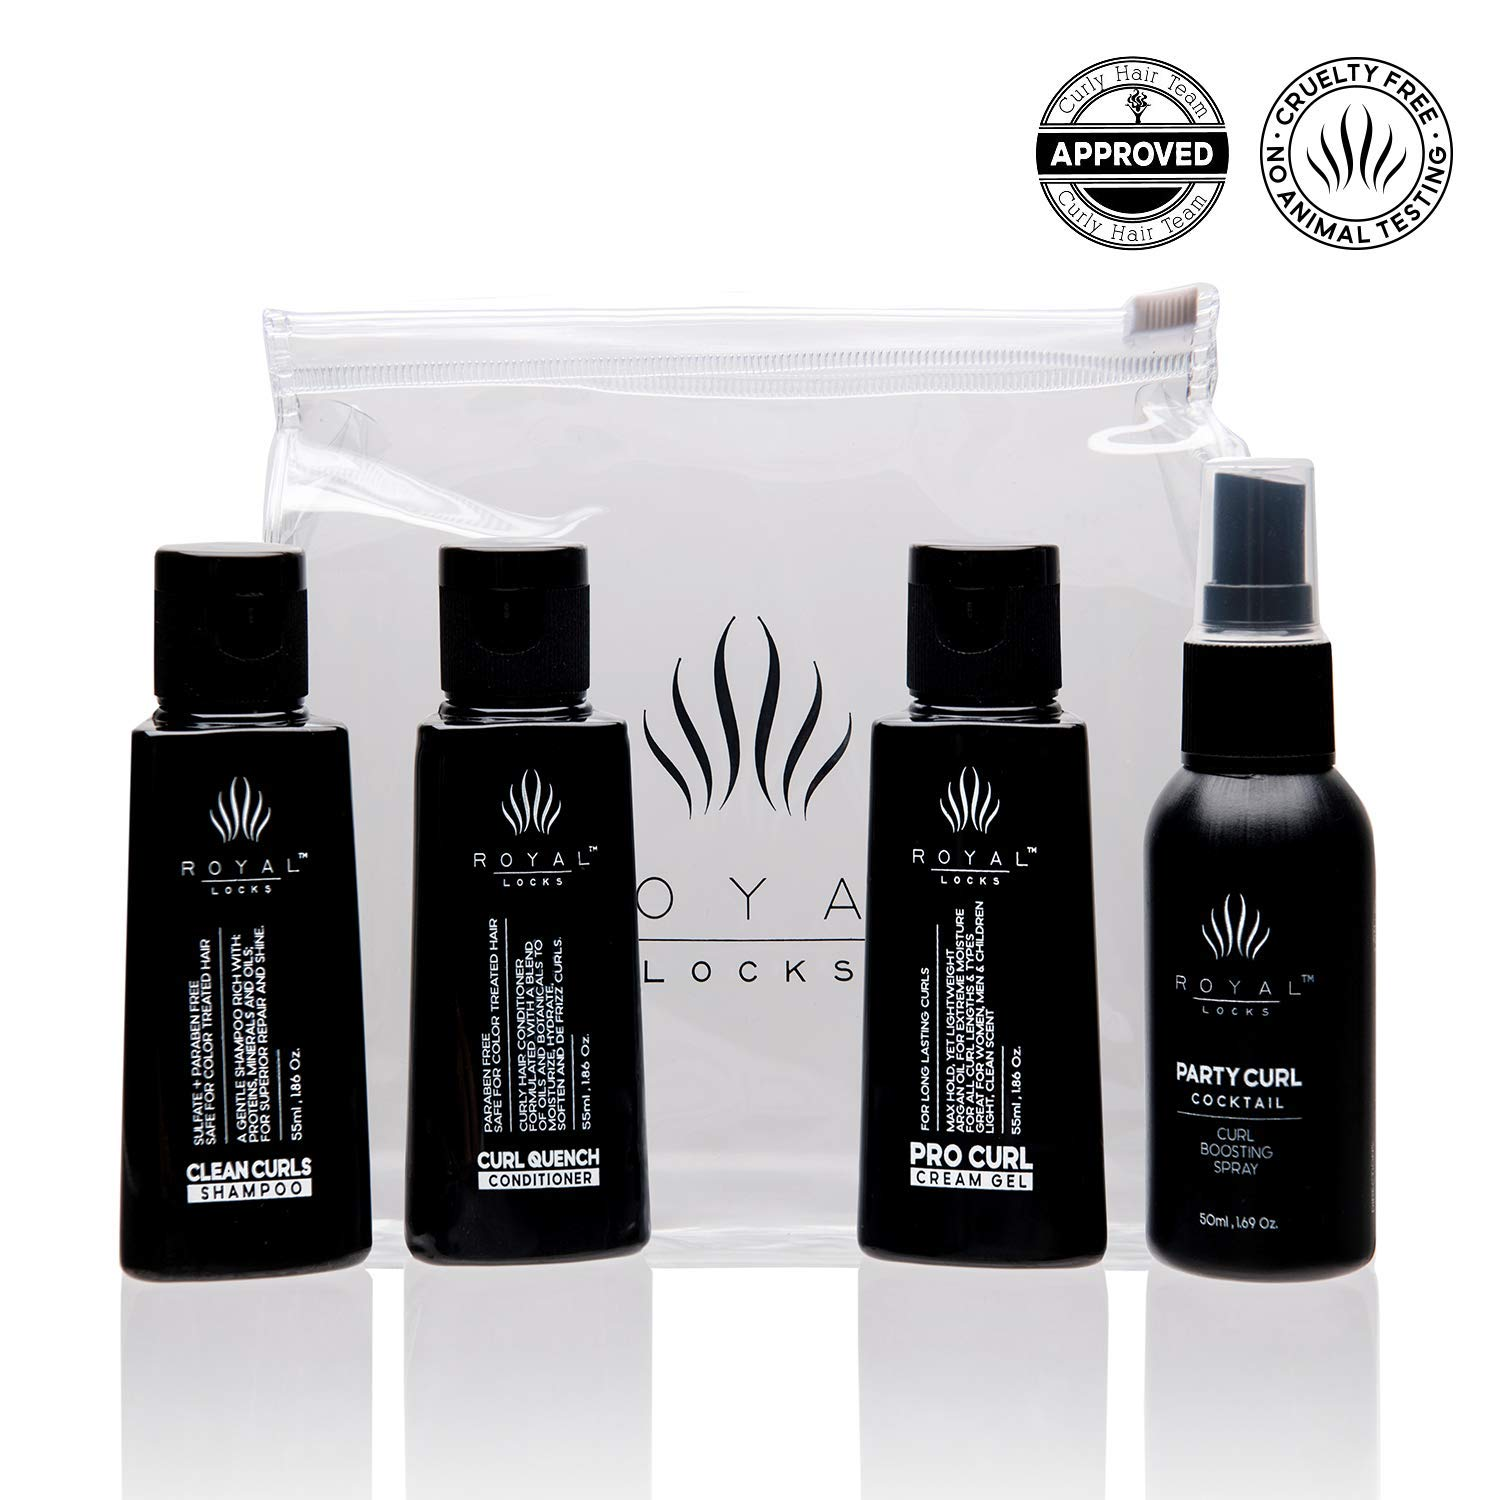 Curly Hair Products Travel Trial Size - Cream Gel Shampoo Conditioner and Spray Argan Oil - Sulfate Paraben Free - Refillable - Reusable Case - TSA Approved Sizes by Royal Locks